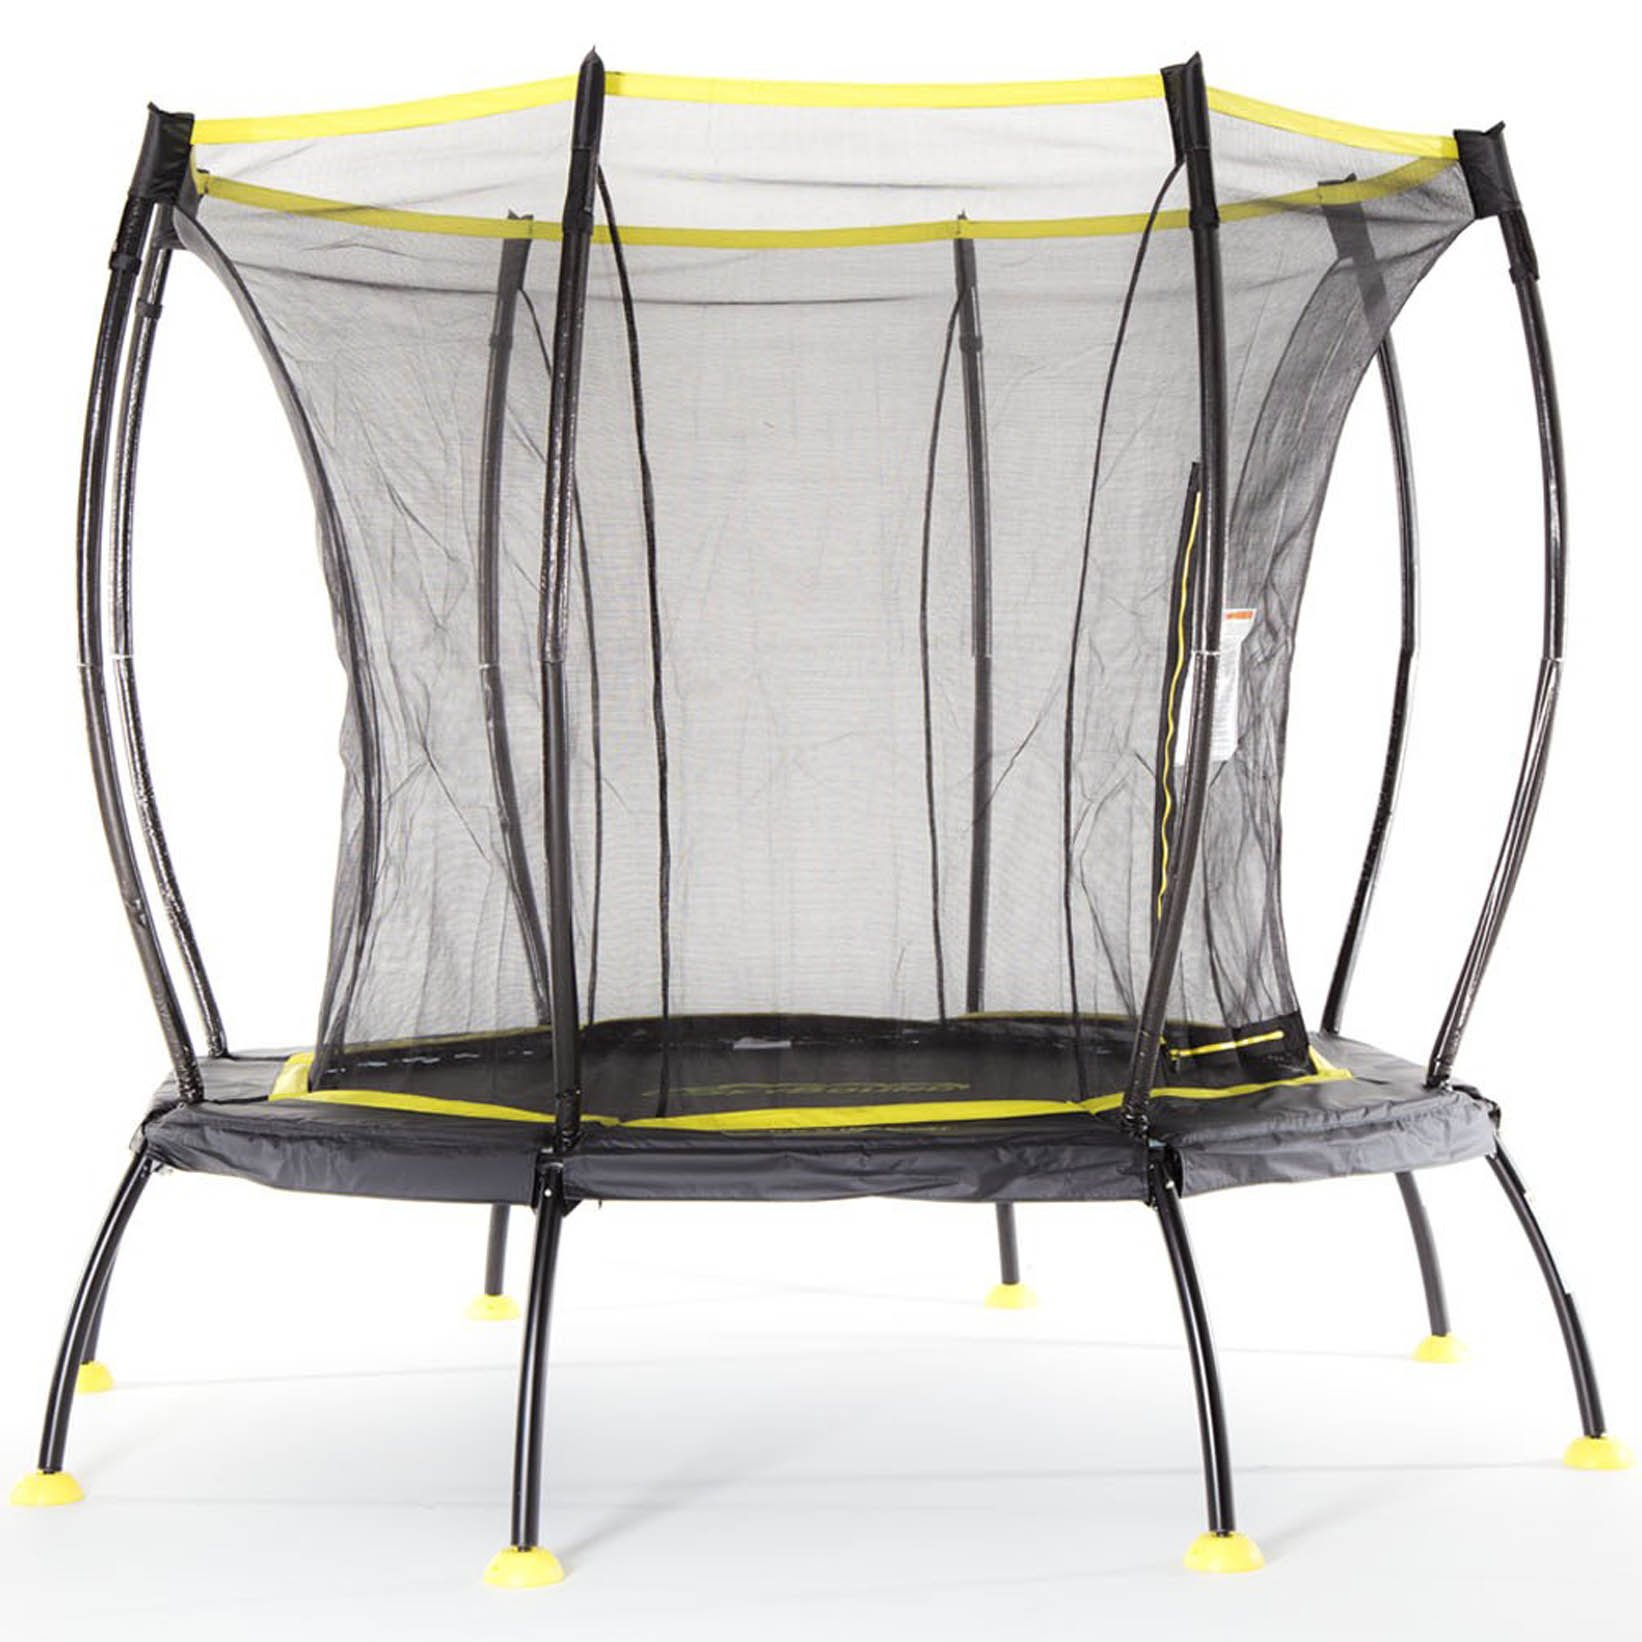 SkyBound Atmos Trampoline with Full Enclosure Net System, 8'